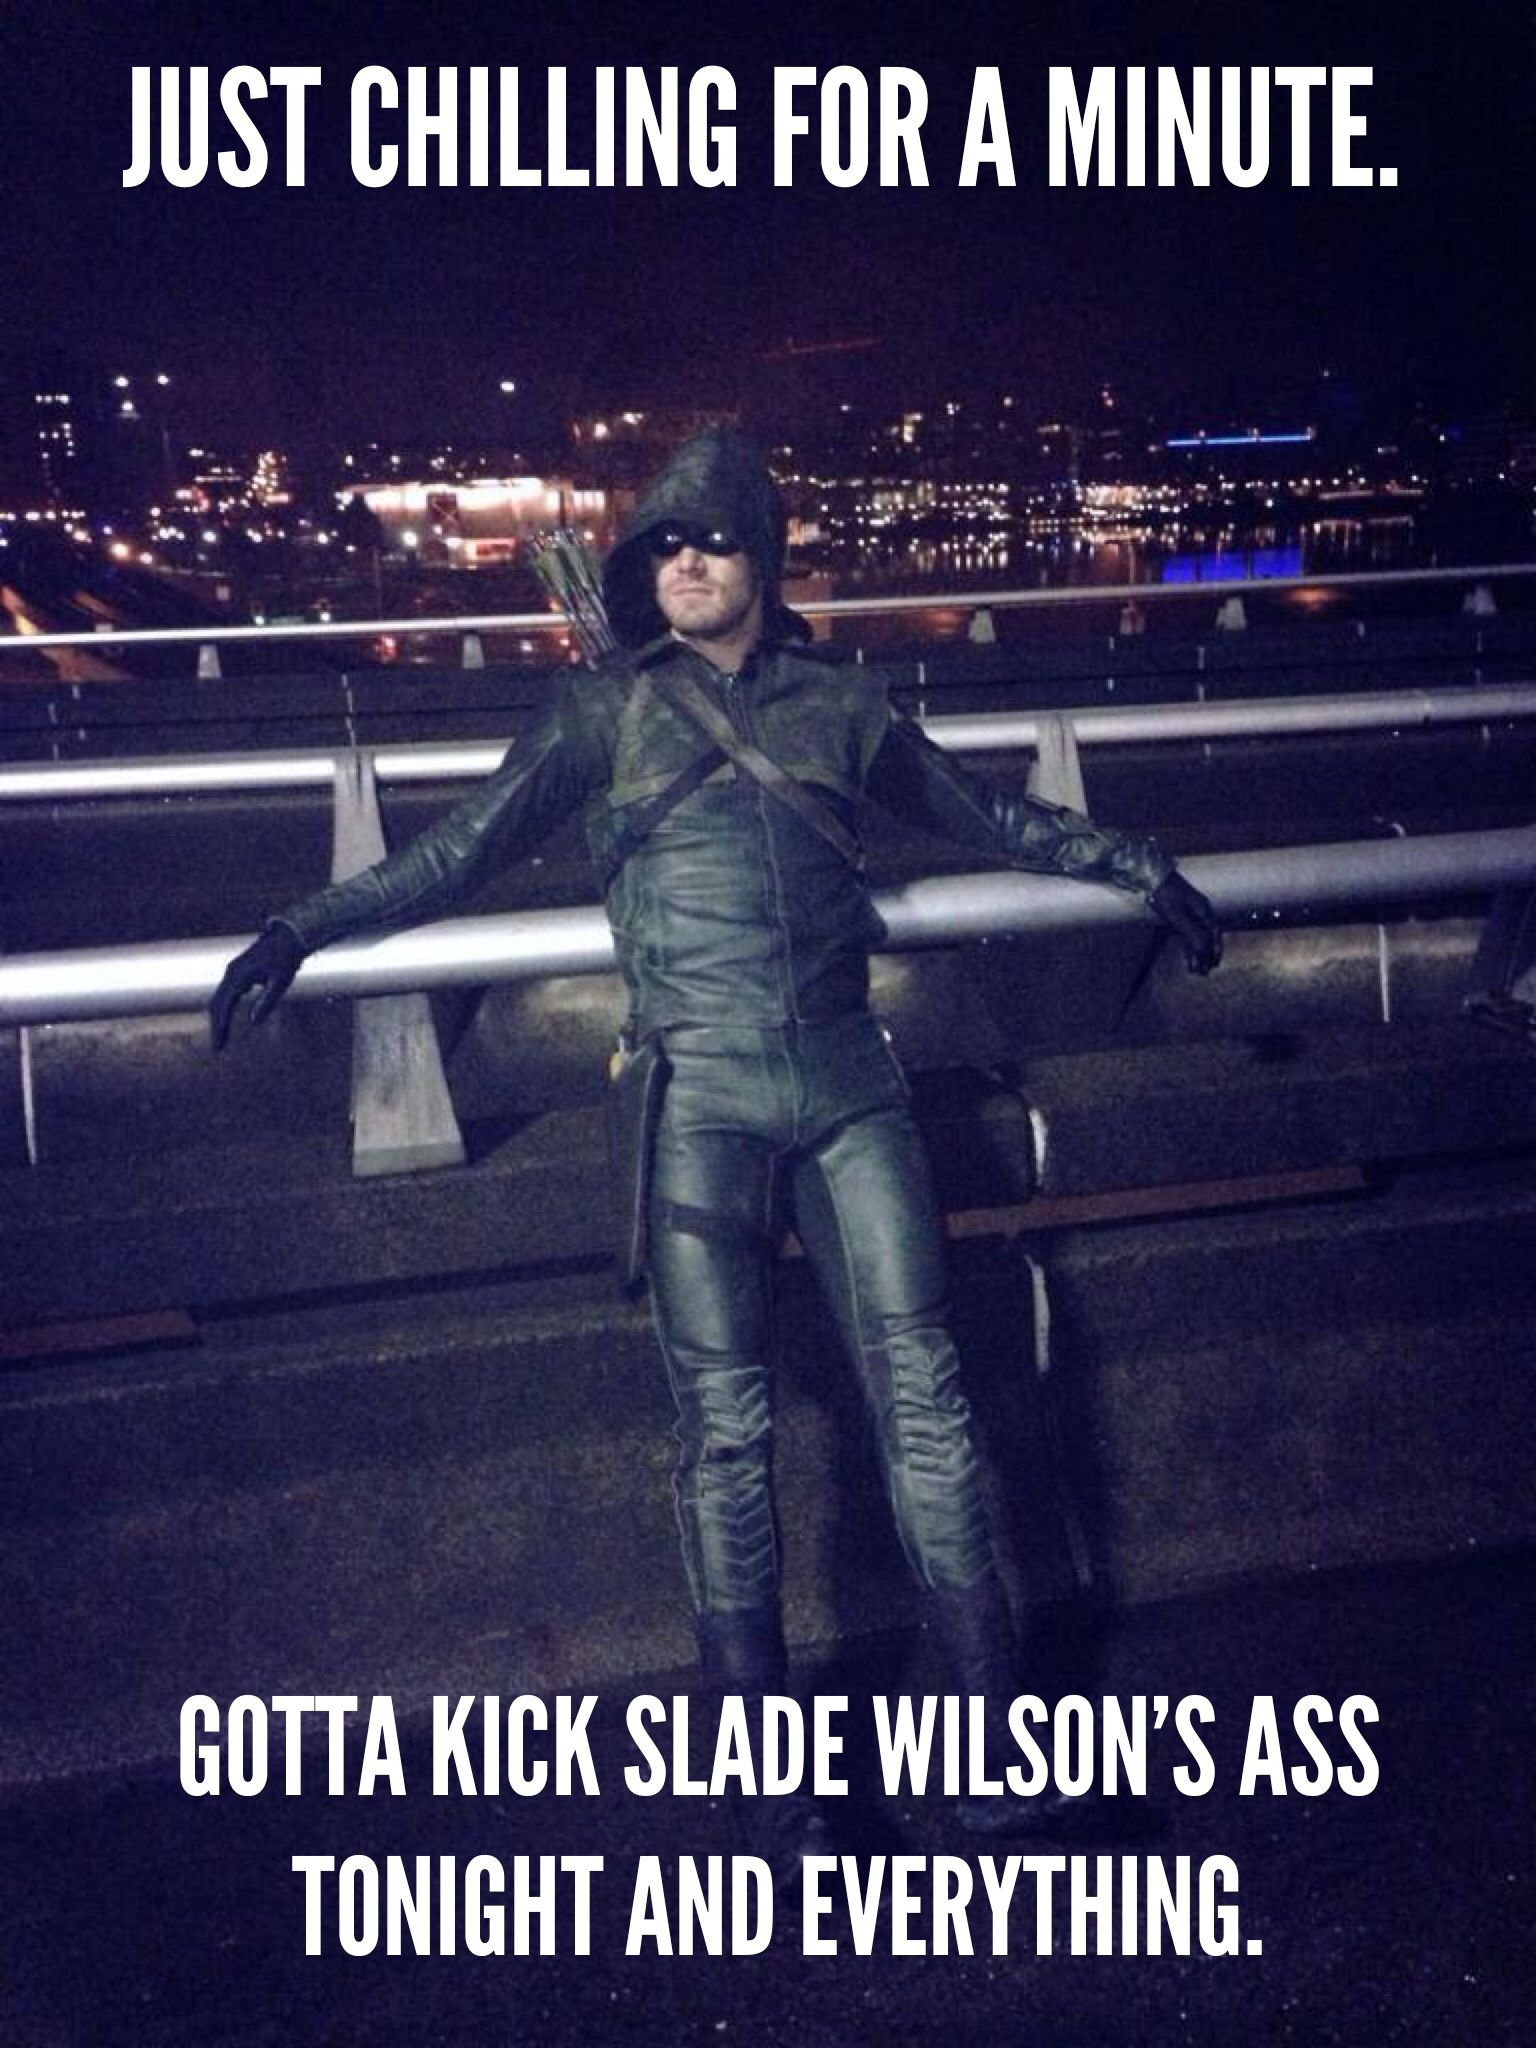 Another Arrow Meme Stephen Amell Liked This One, So Yay